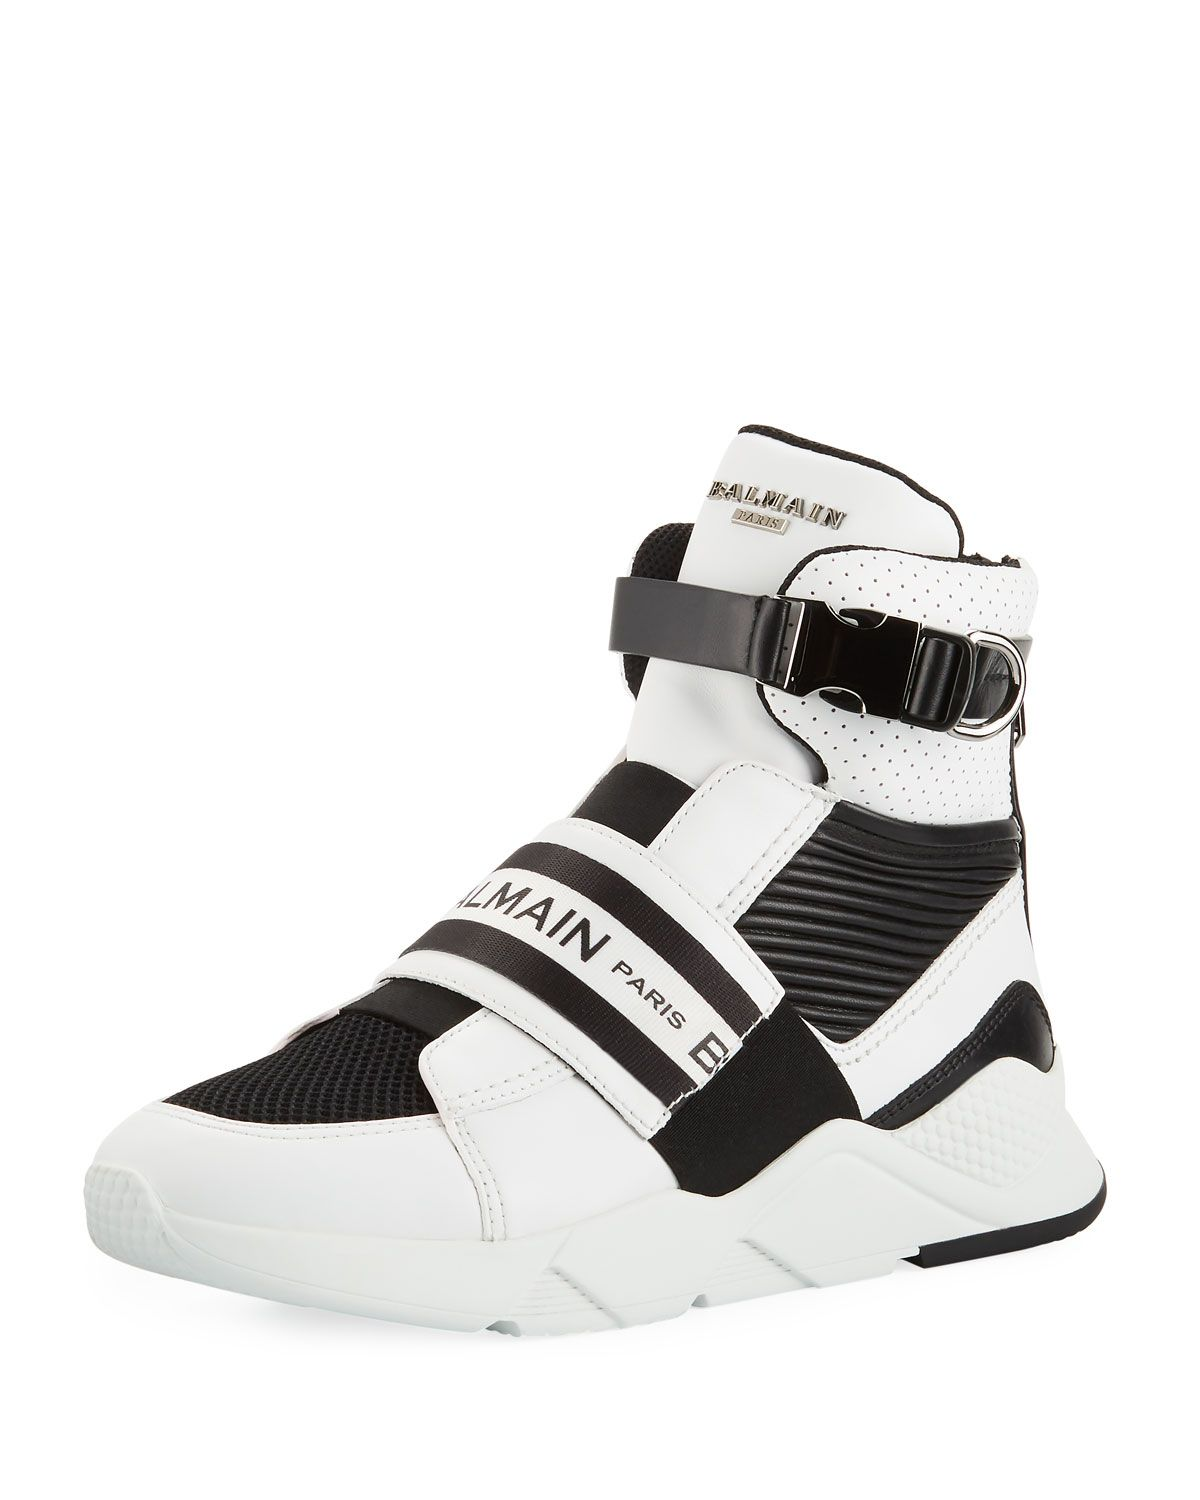 Balmain Men S Exton High Top Sneakers With Contrast Trim Balmain